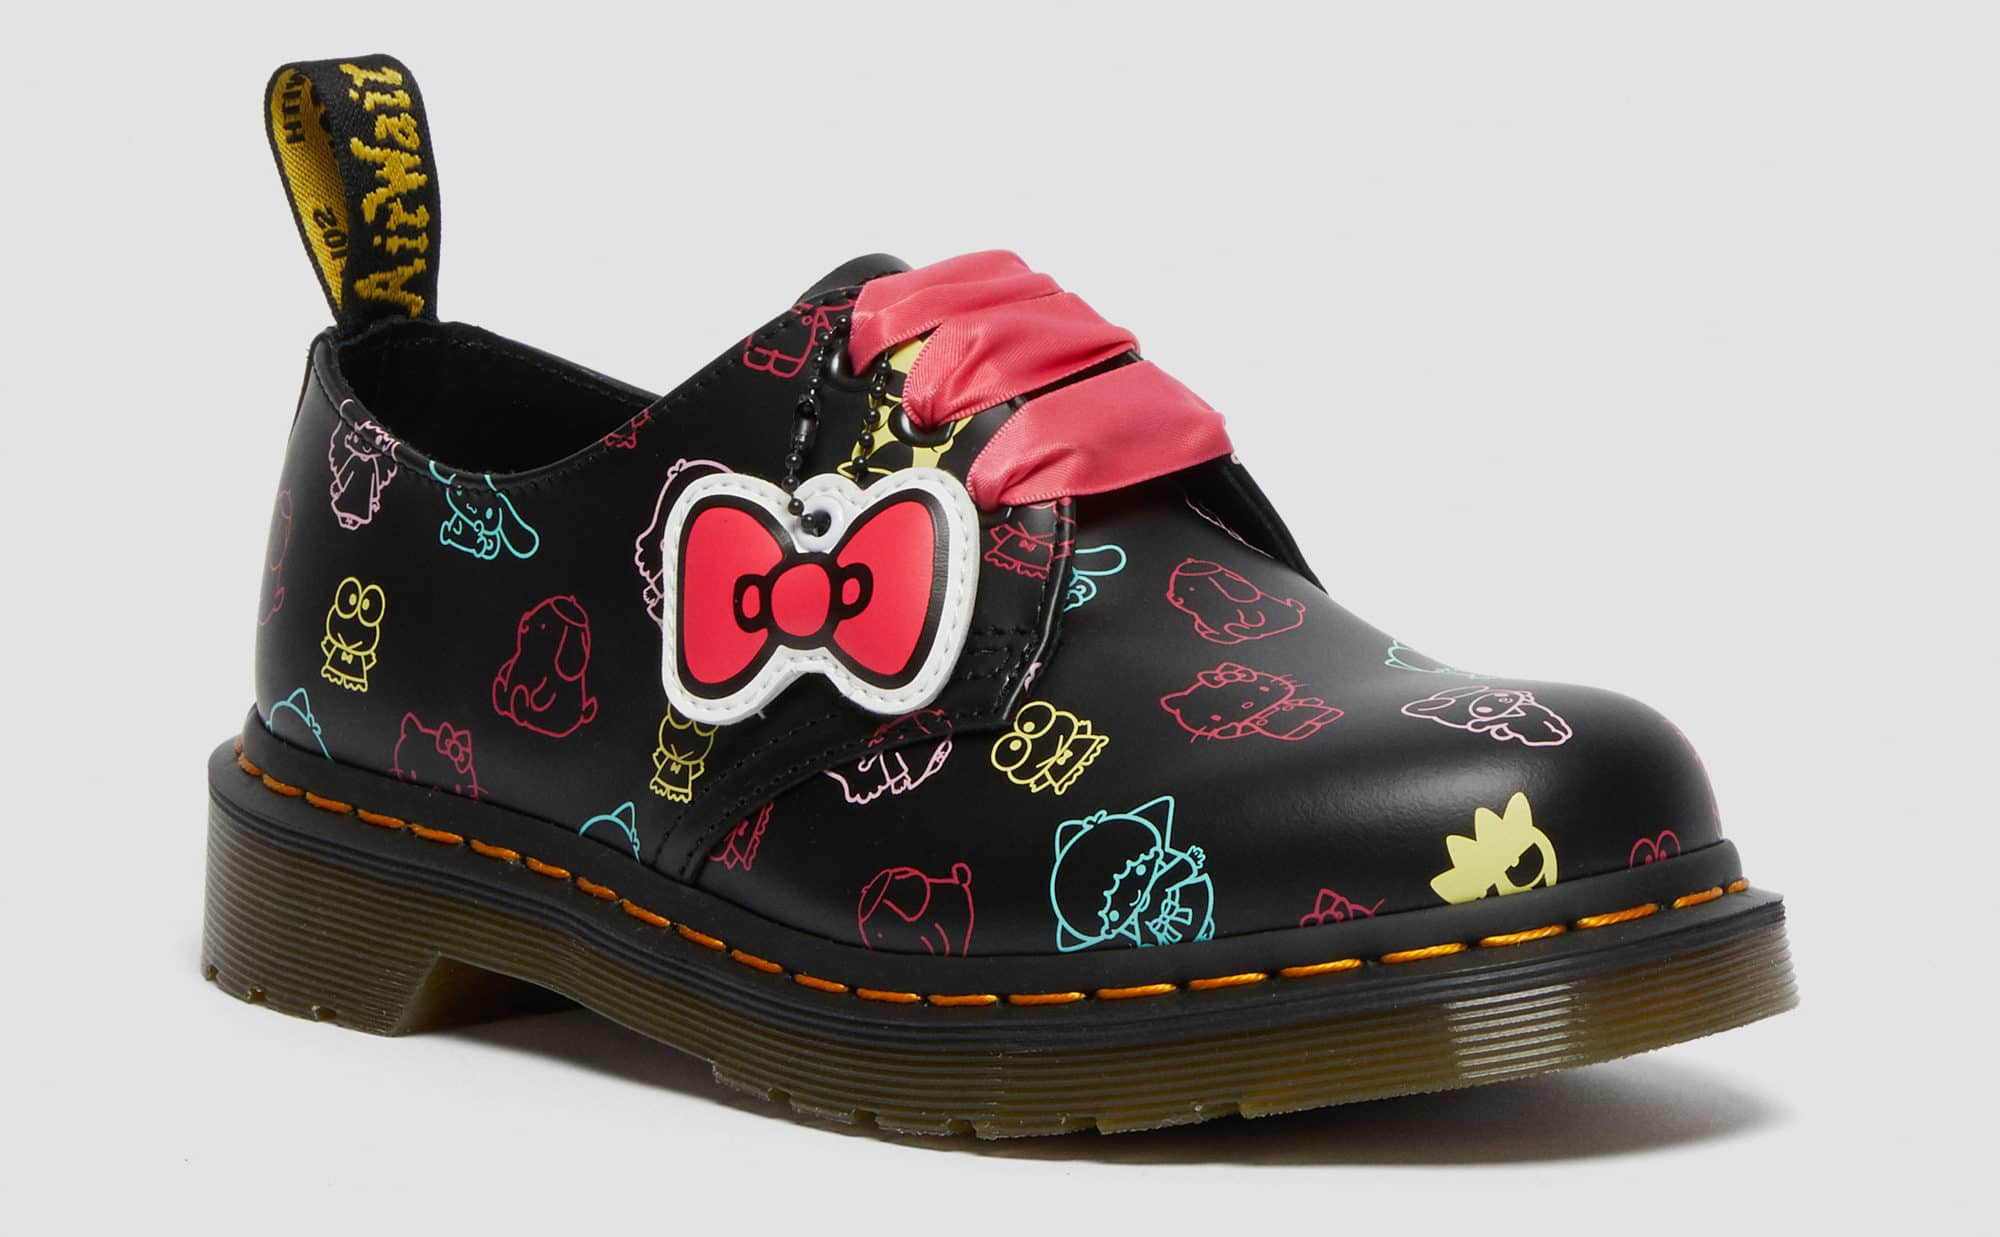 Dr. Martens boots get a cute makeover from Hello Kitty and Friends 13